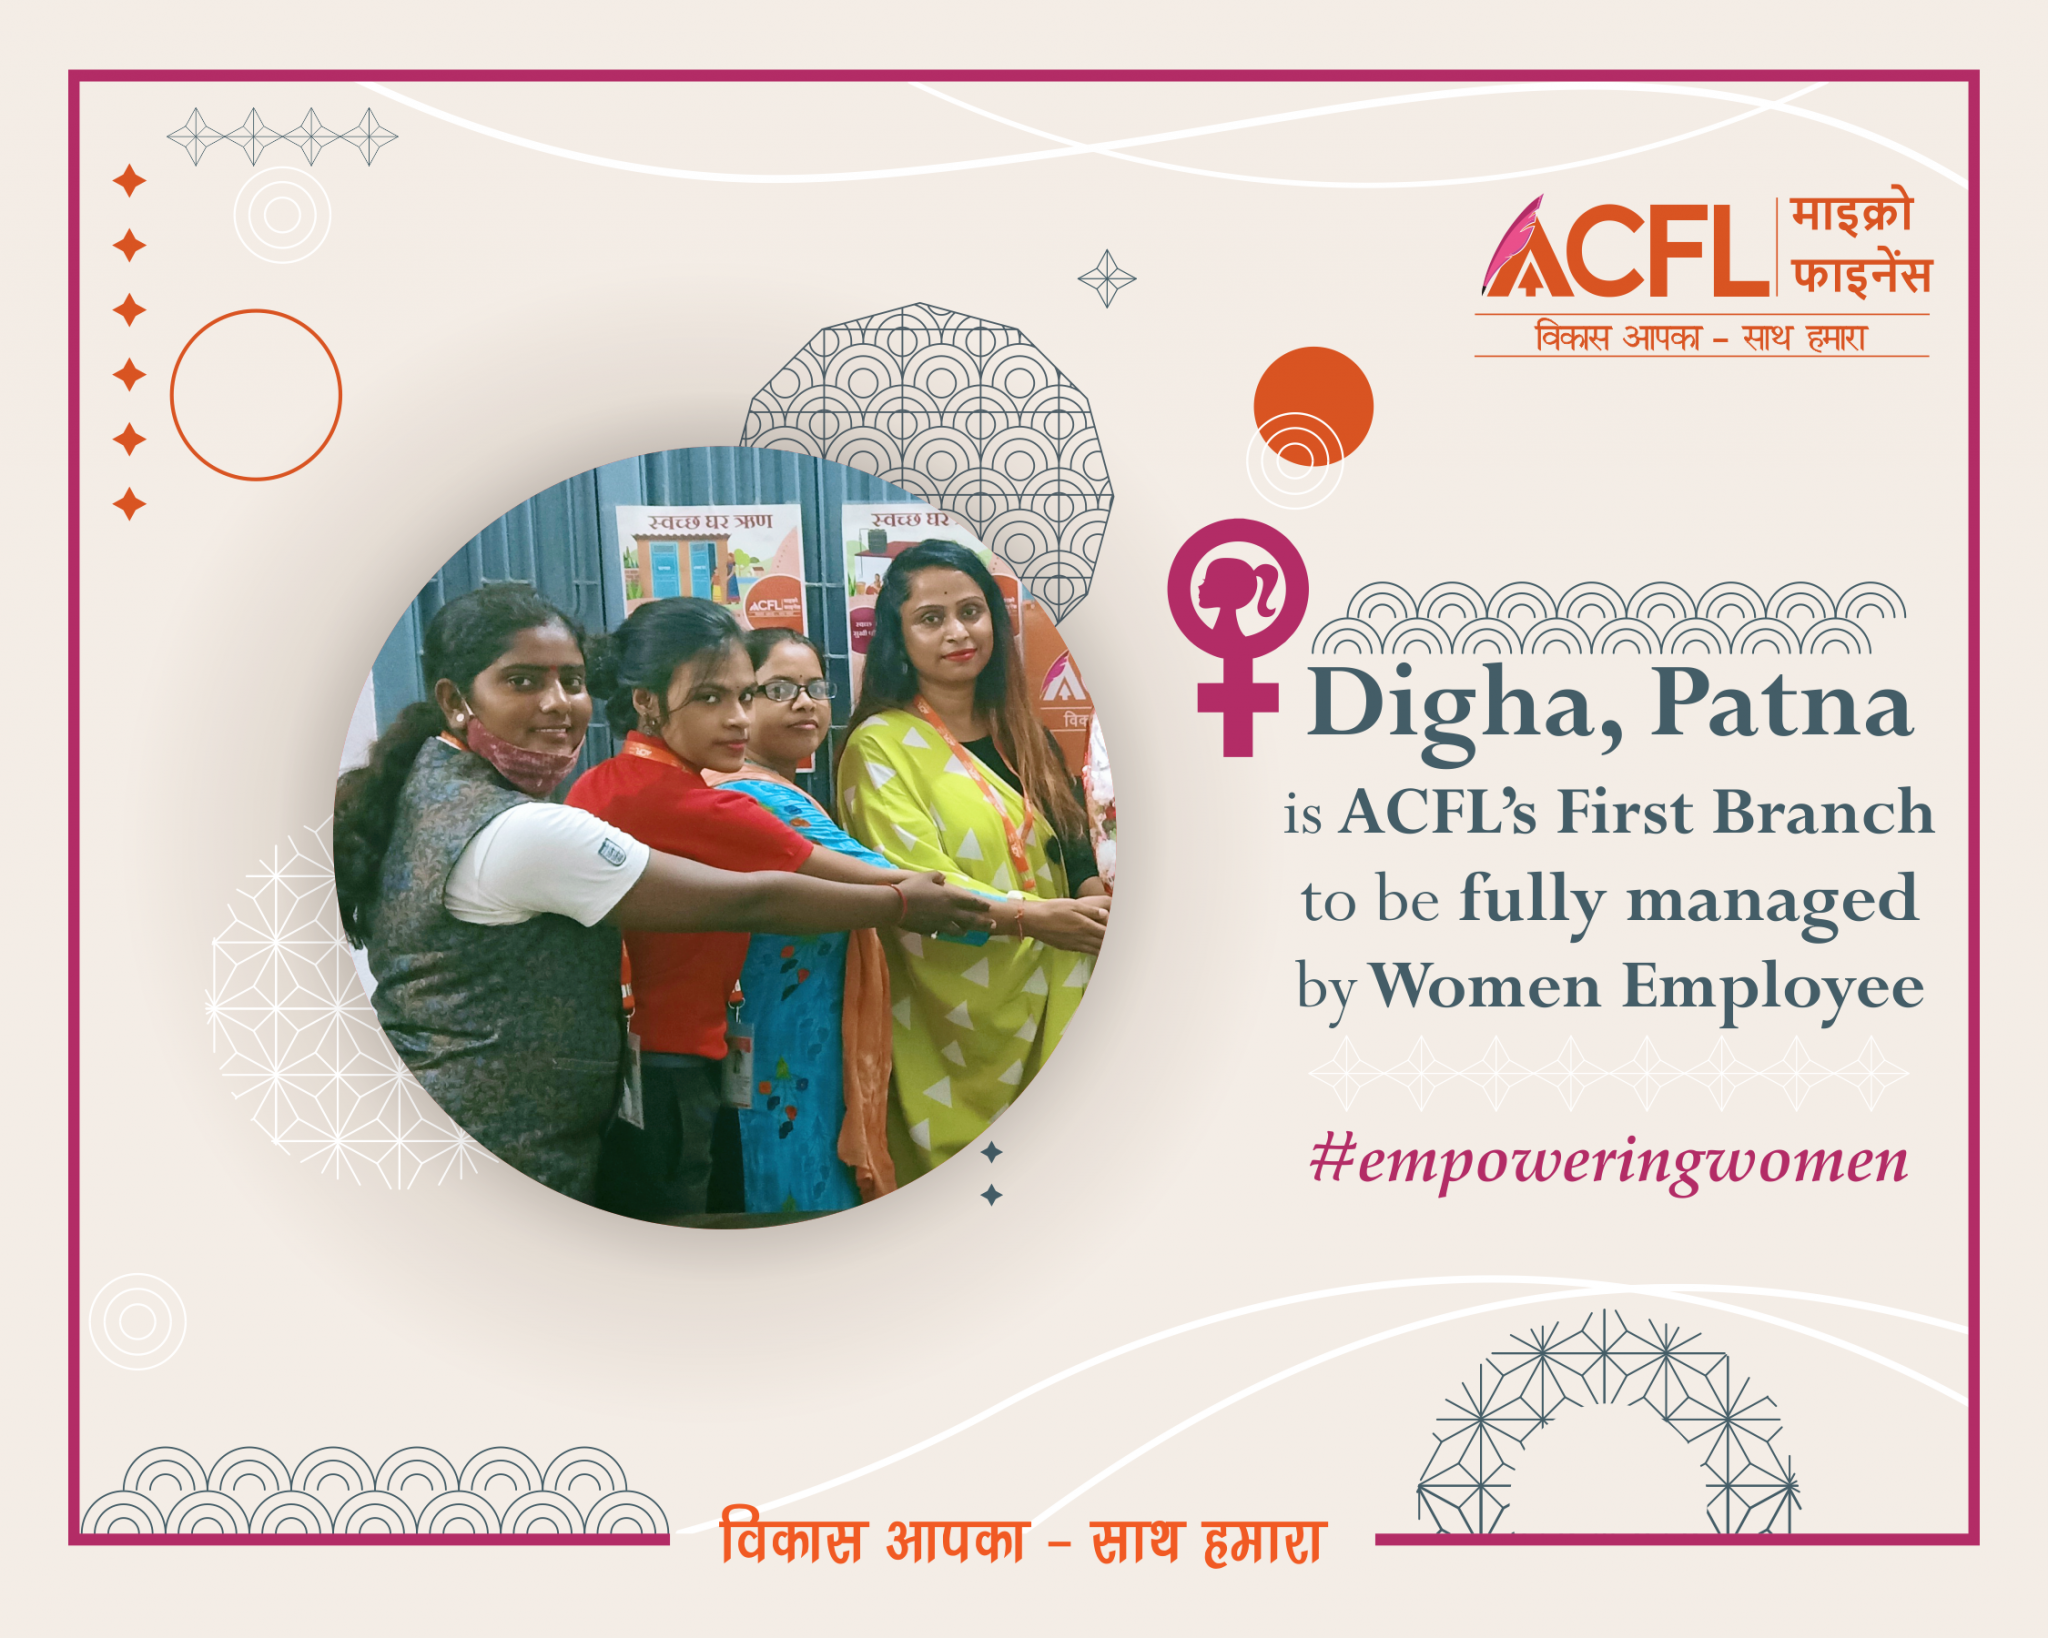 Digha became ACFL's first Branch to be managed fully by Women Employees